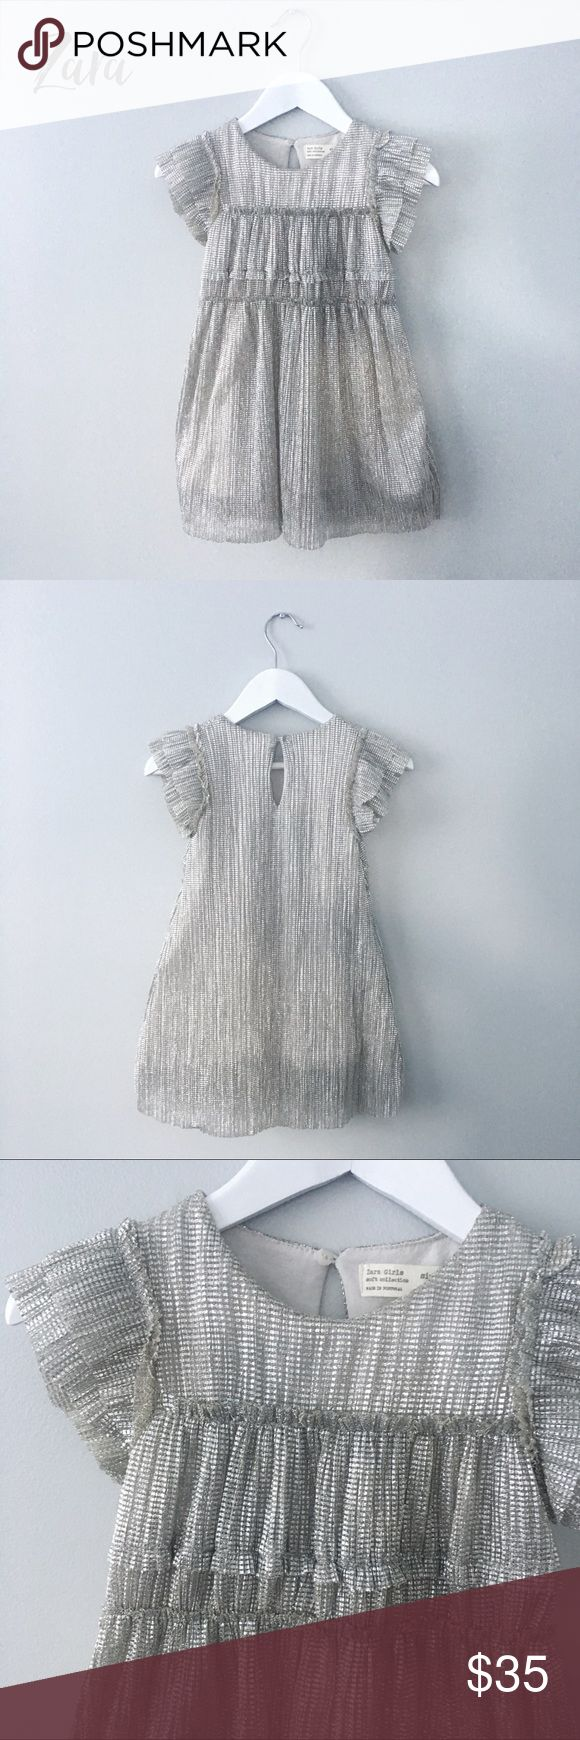 Zara dress Just like new ! Gorgeous special occasion dress. Metallic / silver and gray color, very stretchy material, lightweight. Runs small ( short ) Zara Dresses Formal